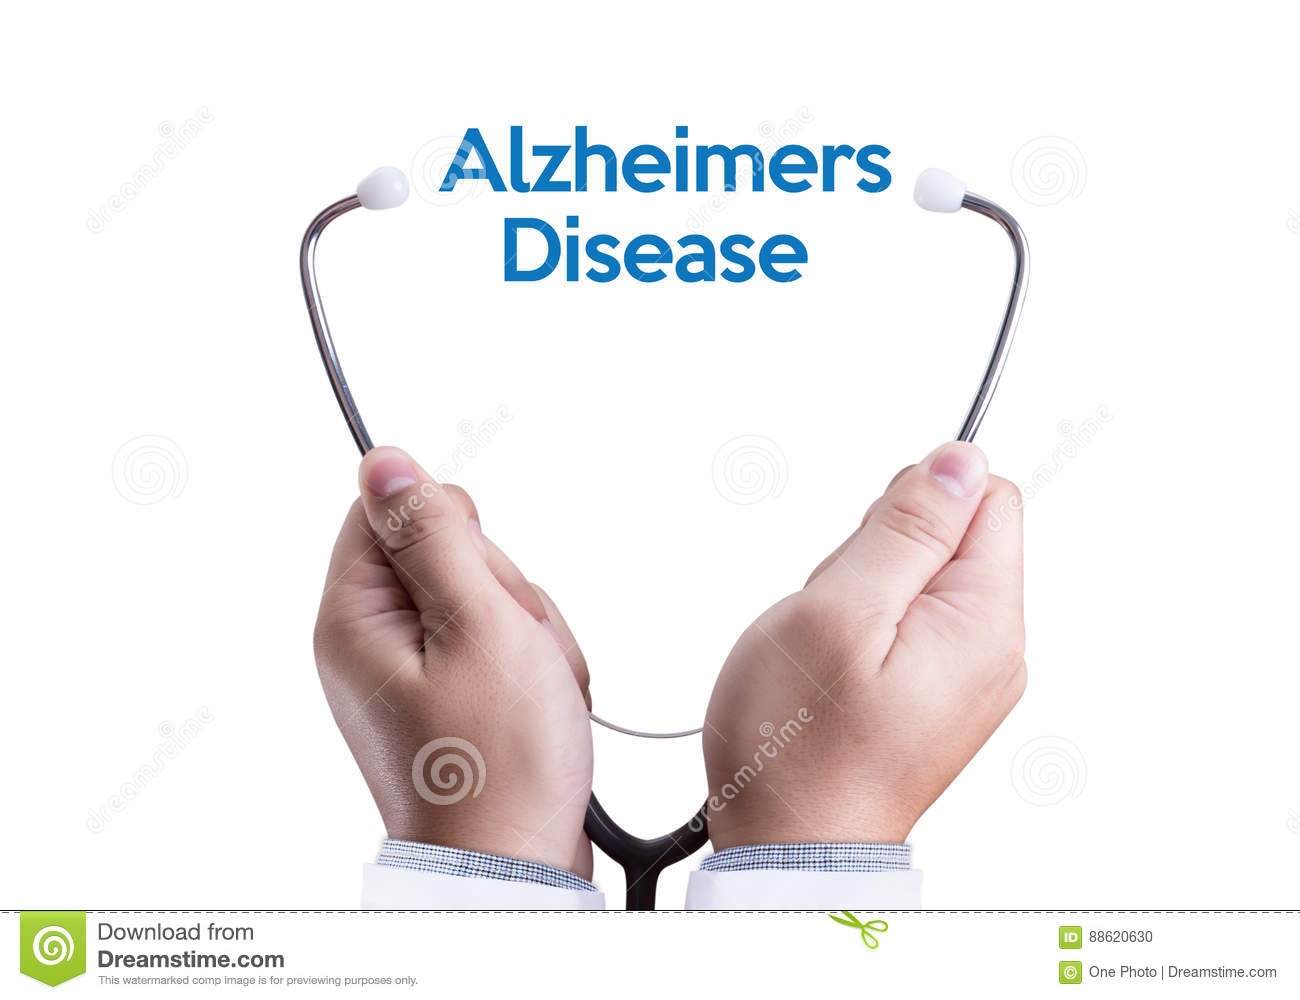 alzheimers degenerative brain process Individuals with frontotemporal degeneration exhibit reduced chemical activity (hypometabolism) in the frontal and temporal areas of the brain, a finding that can distinguish the disorder from alzheimer disease.